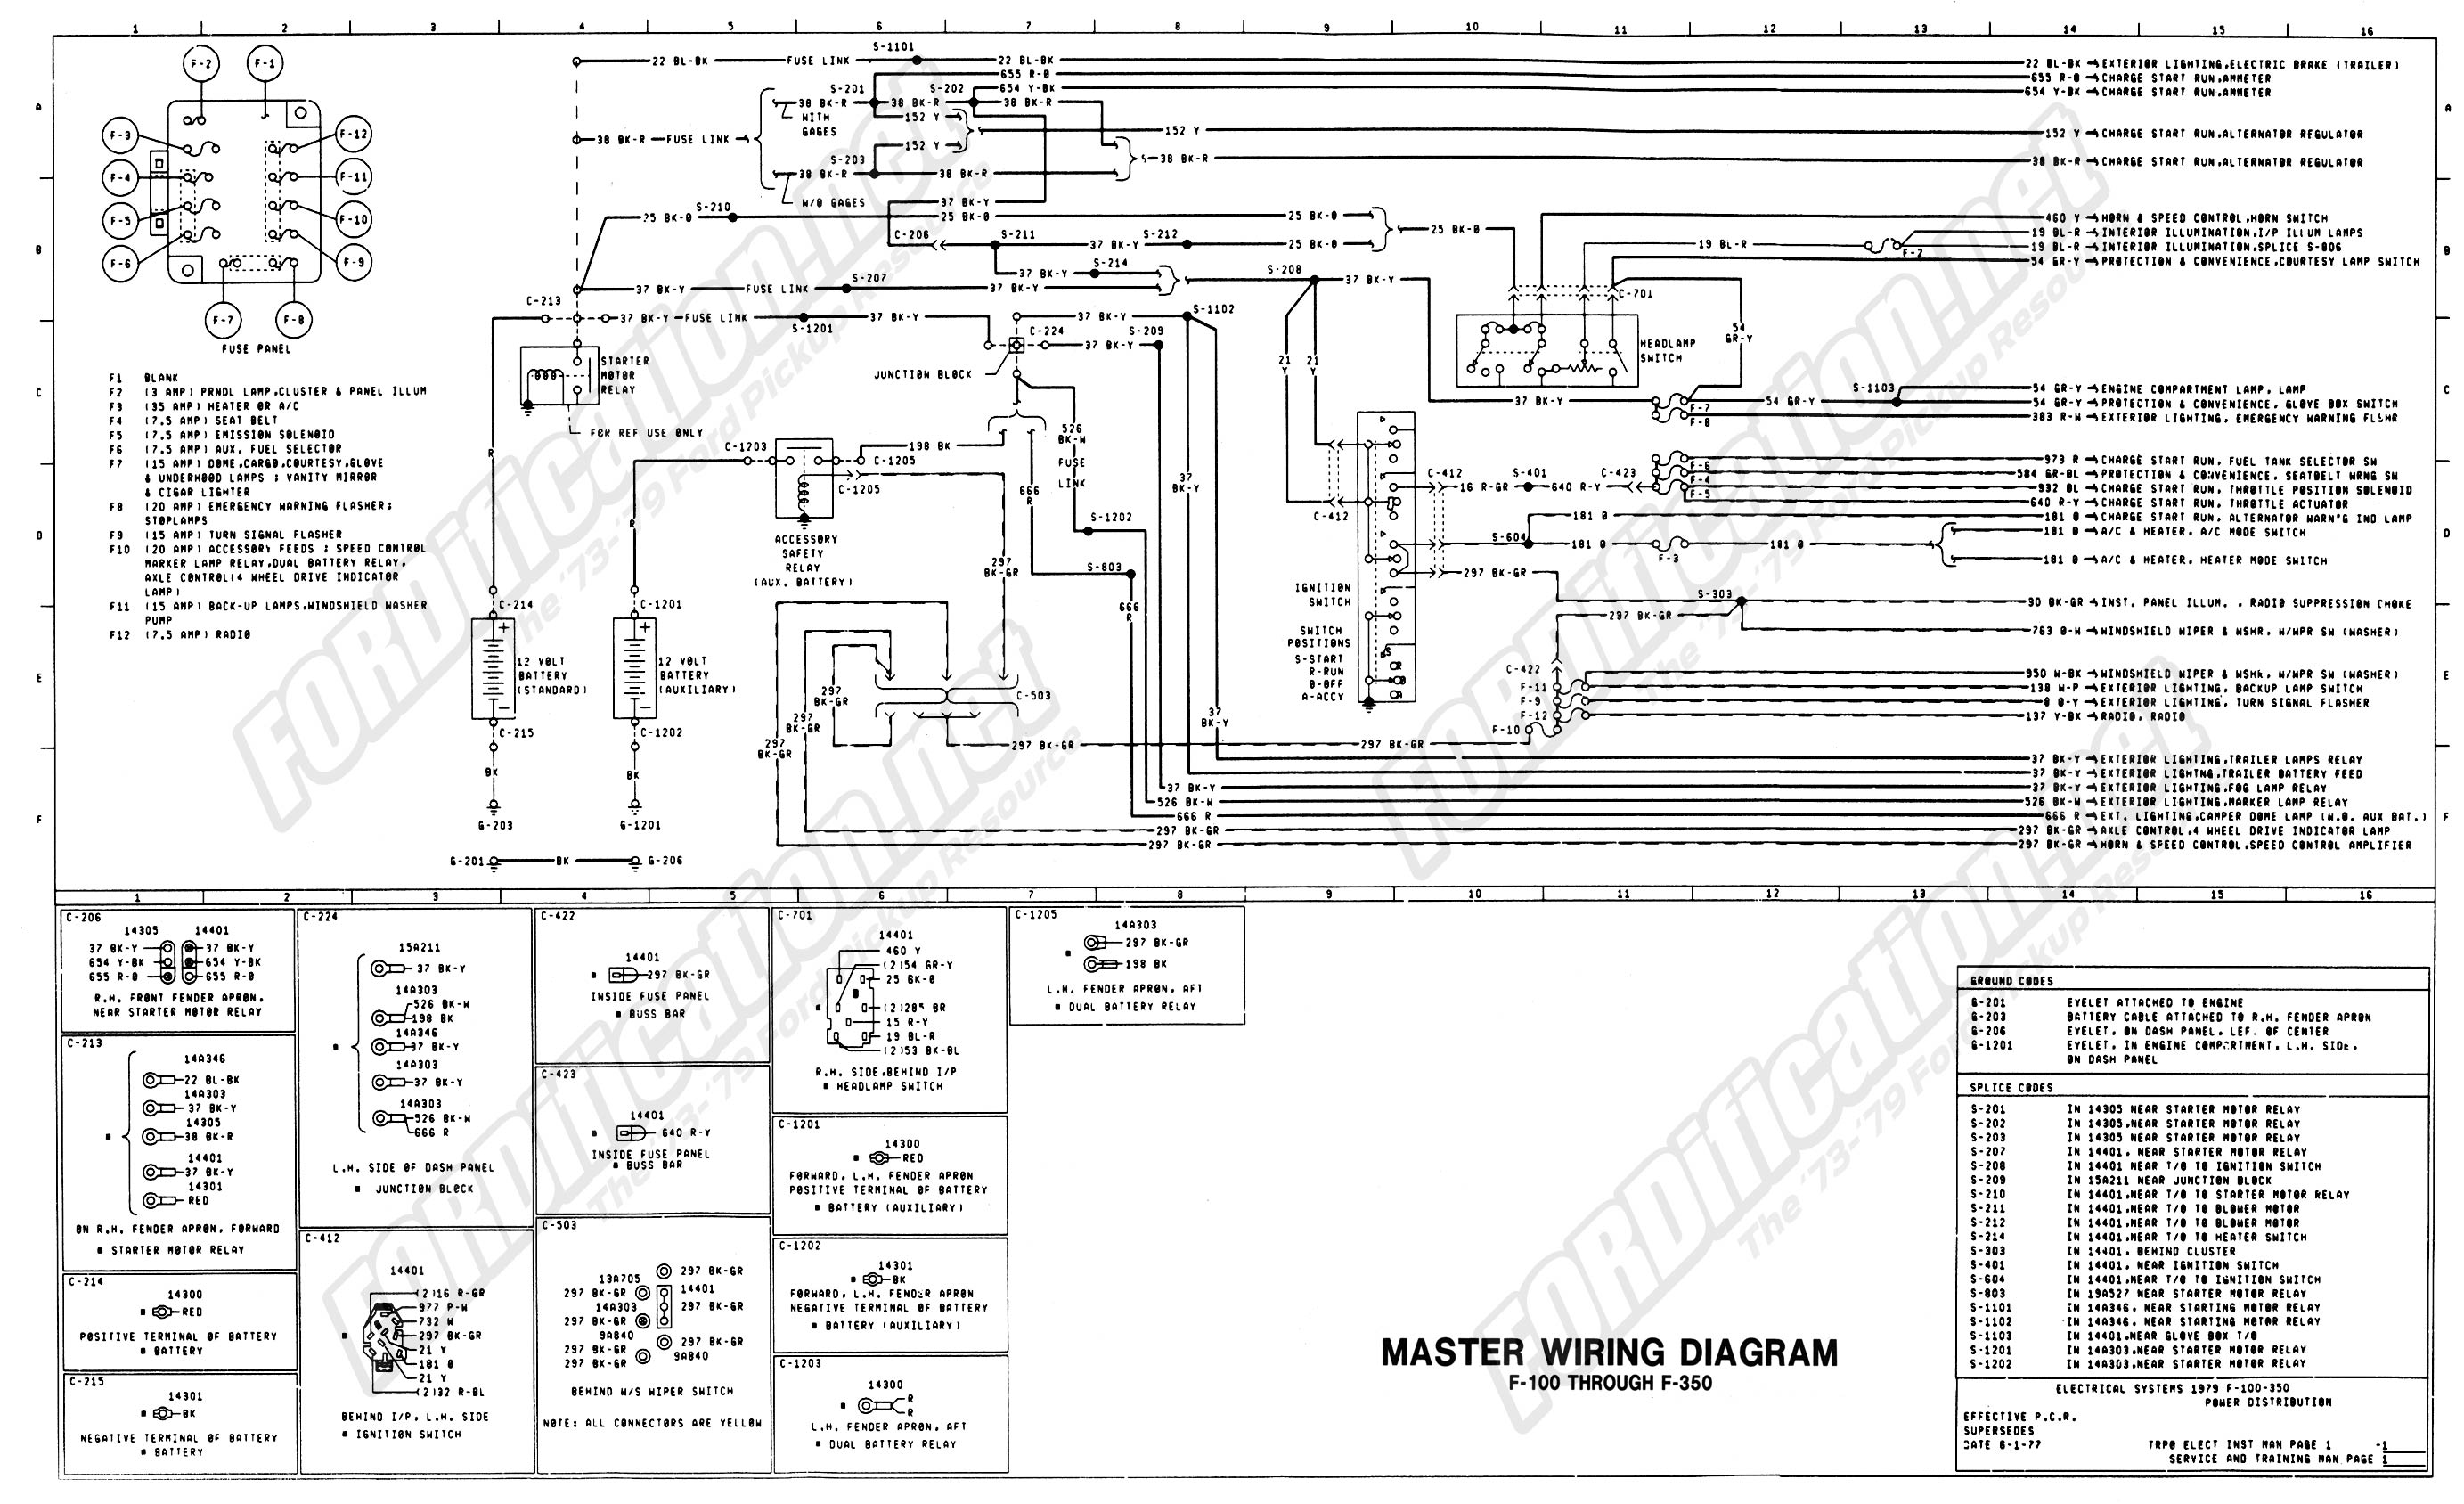 wiring_79master_1of9 1973 1979 ford truck wiring diagrams & schematics fordification net ford truck wiring schematics at alyssarenee.co